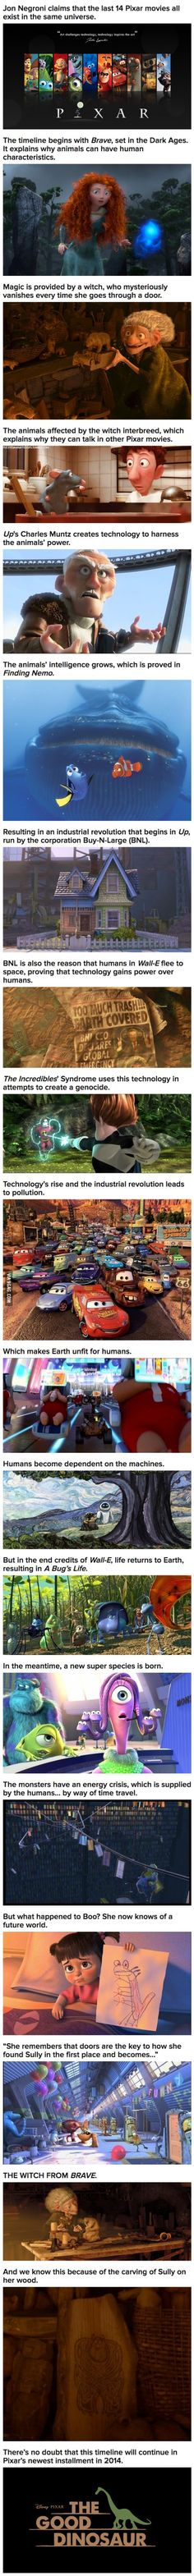 Oh my god. Pixar you blew my mind